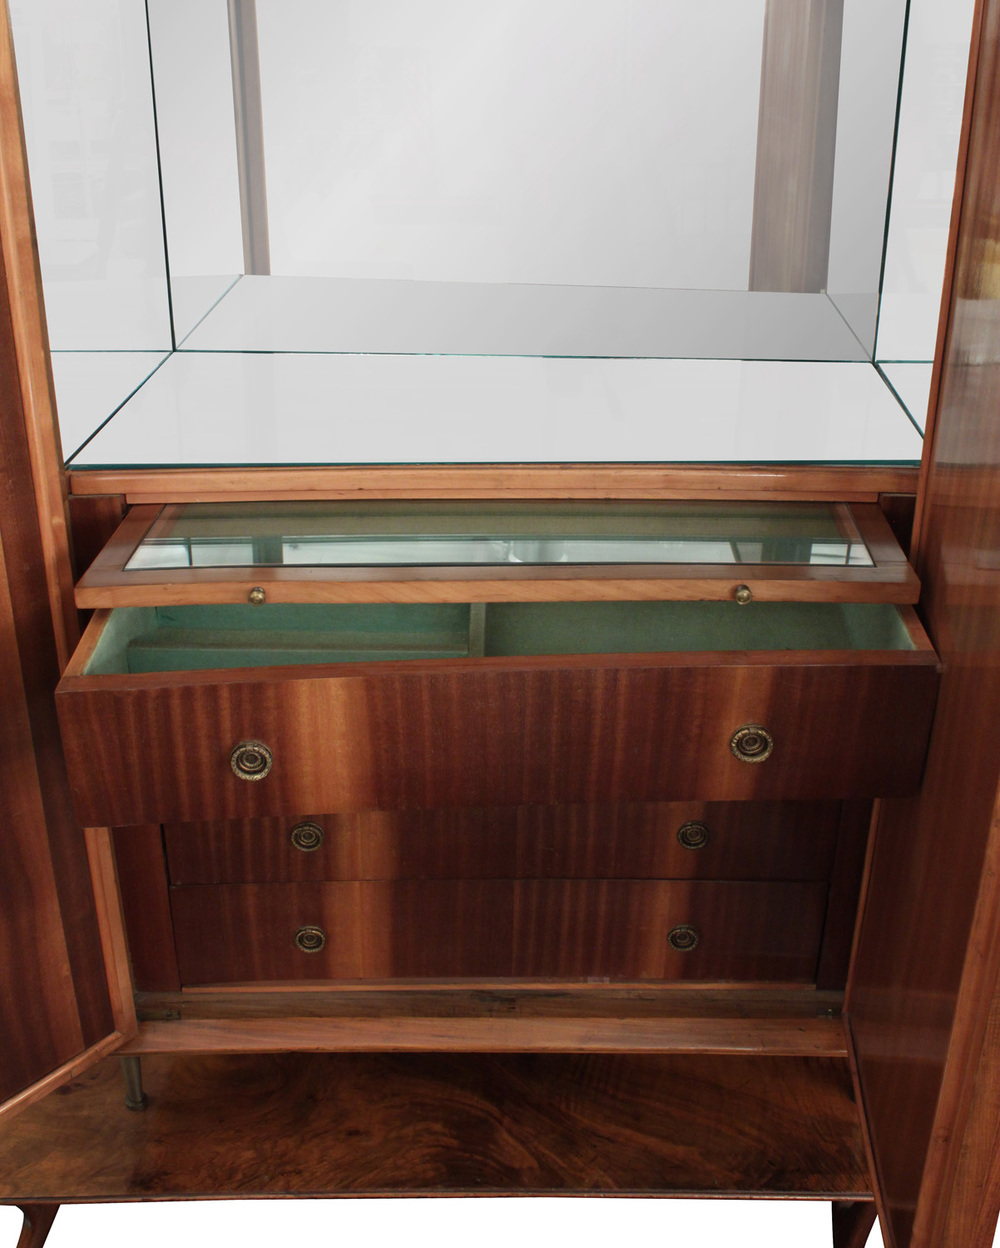 Diez 150 inlay 4 door backlit cabinet3 detail5a hires.jpg